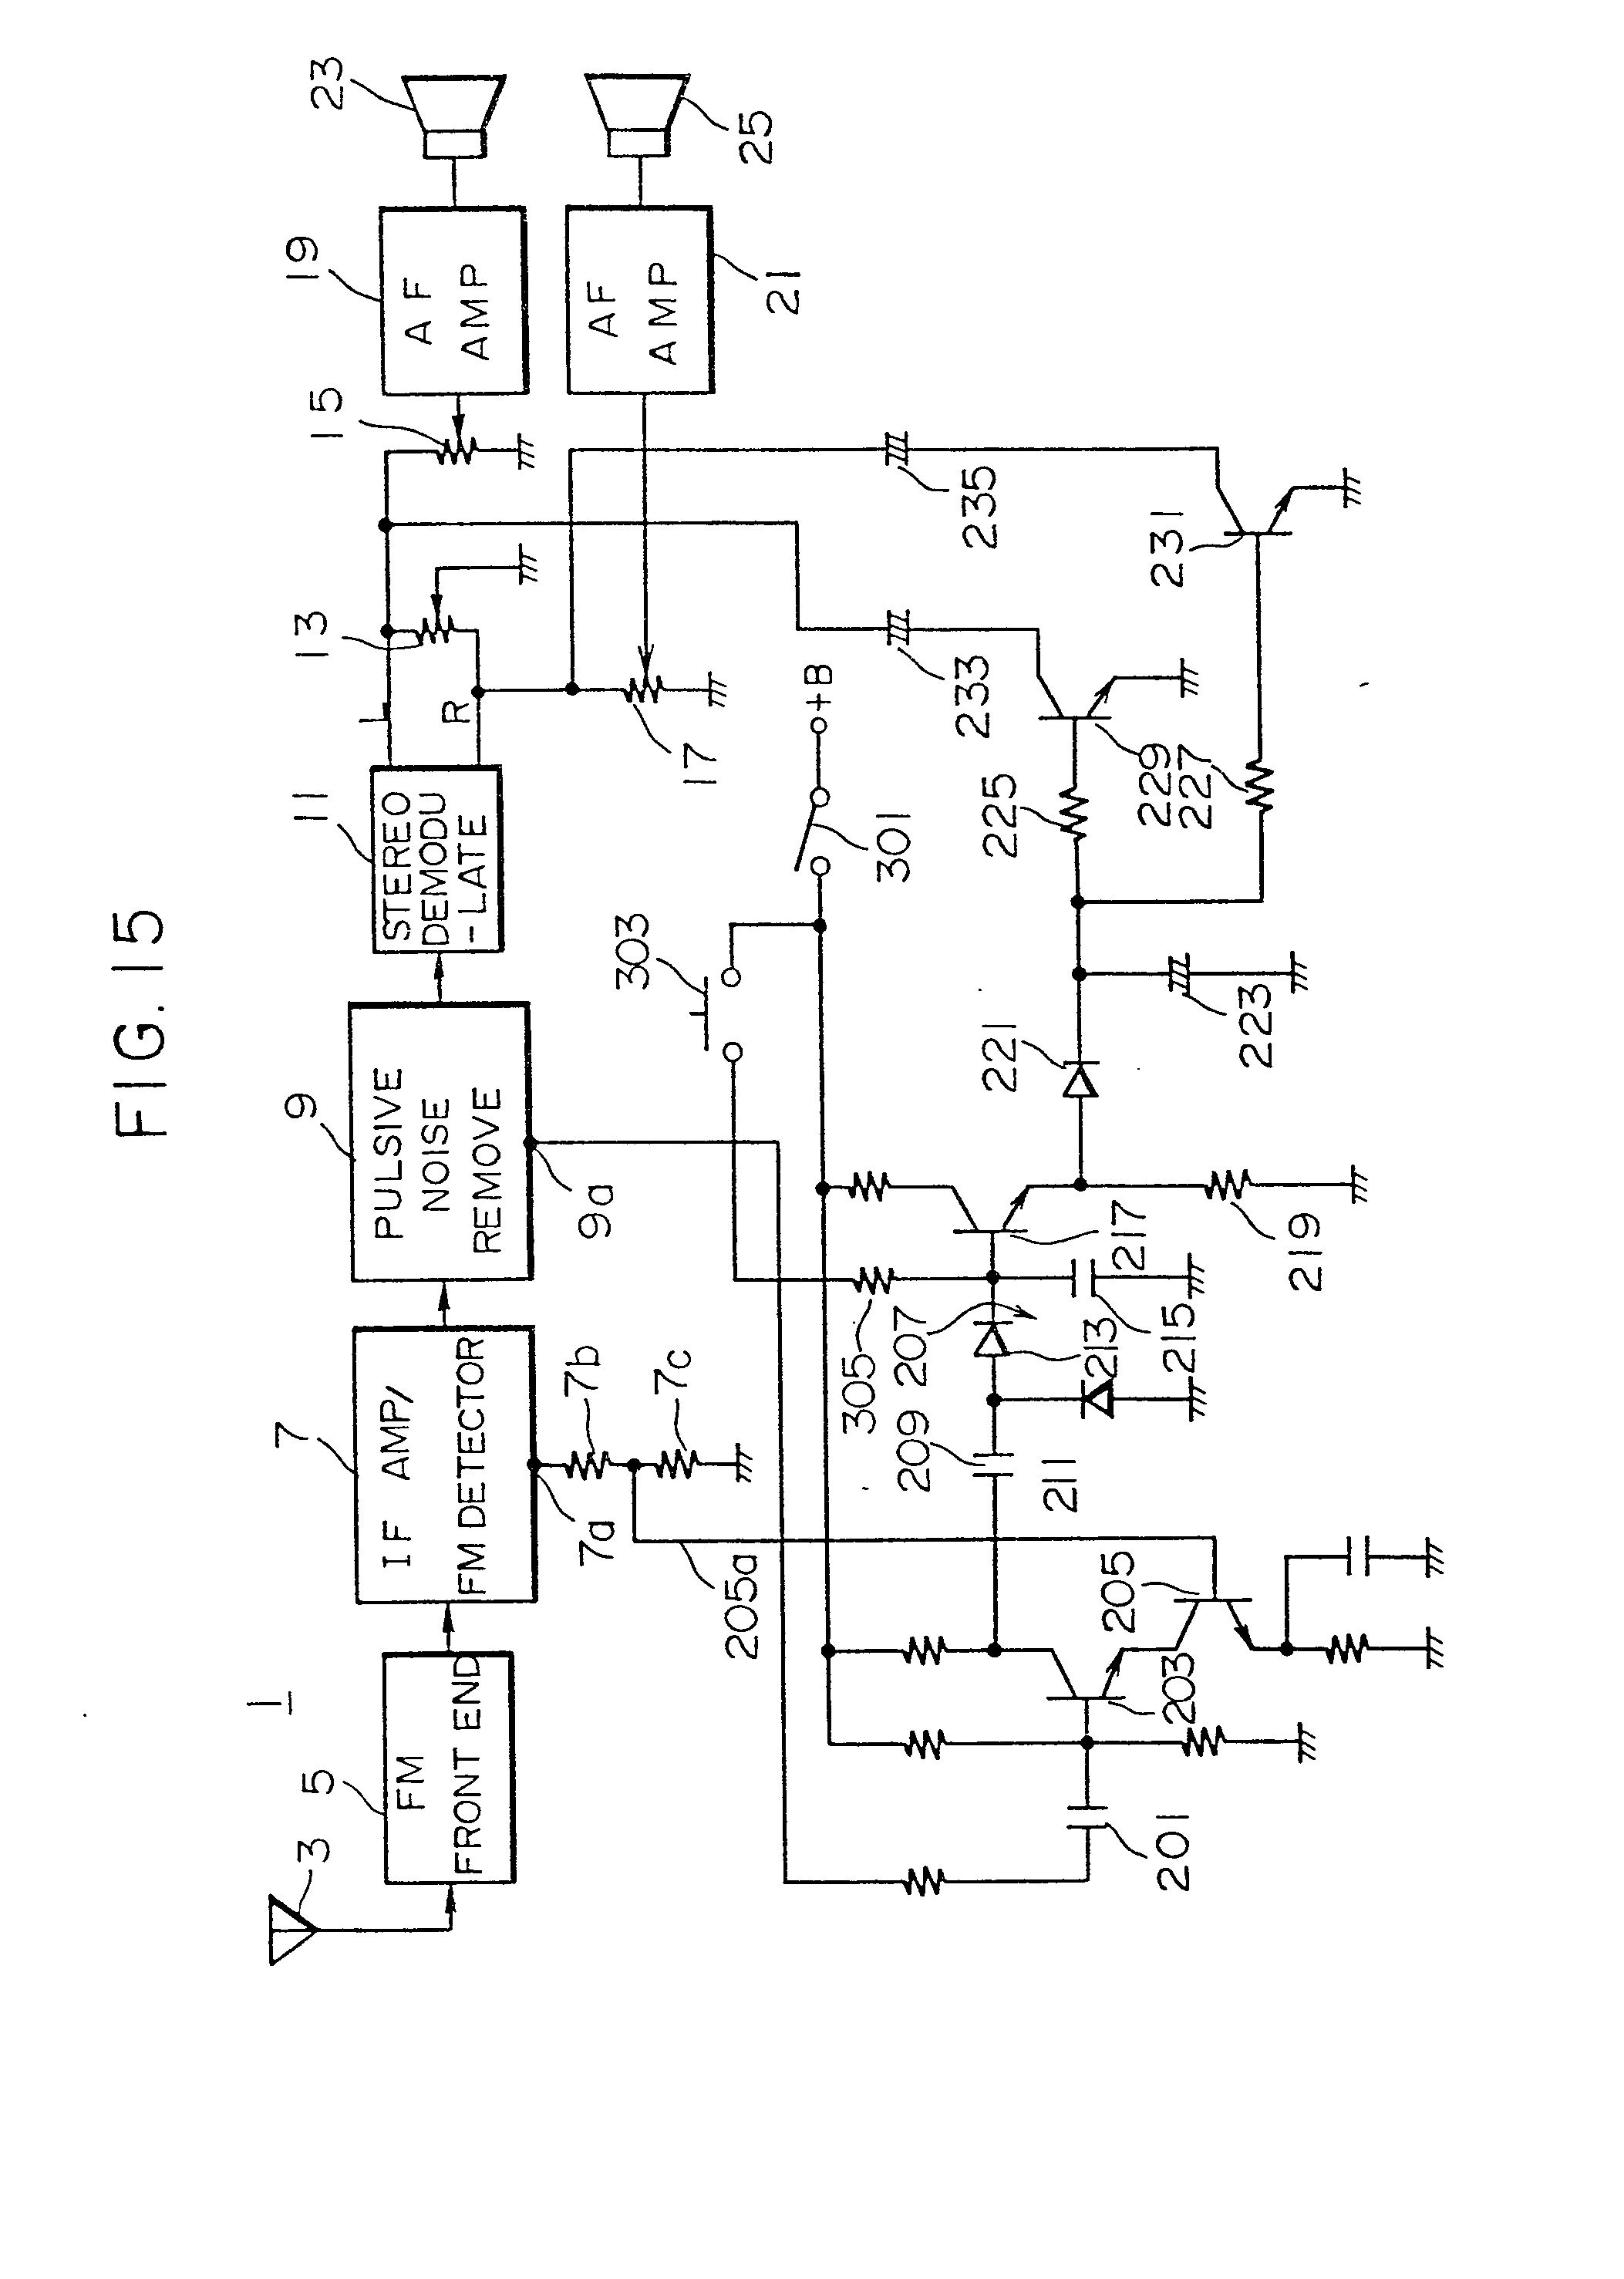 Distortion Reducing Circuit For An Fm Receiver Patent 0030874 Diagram Besides Radio Furthermore